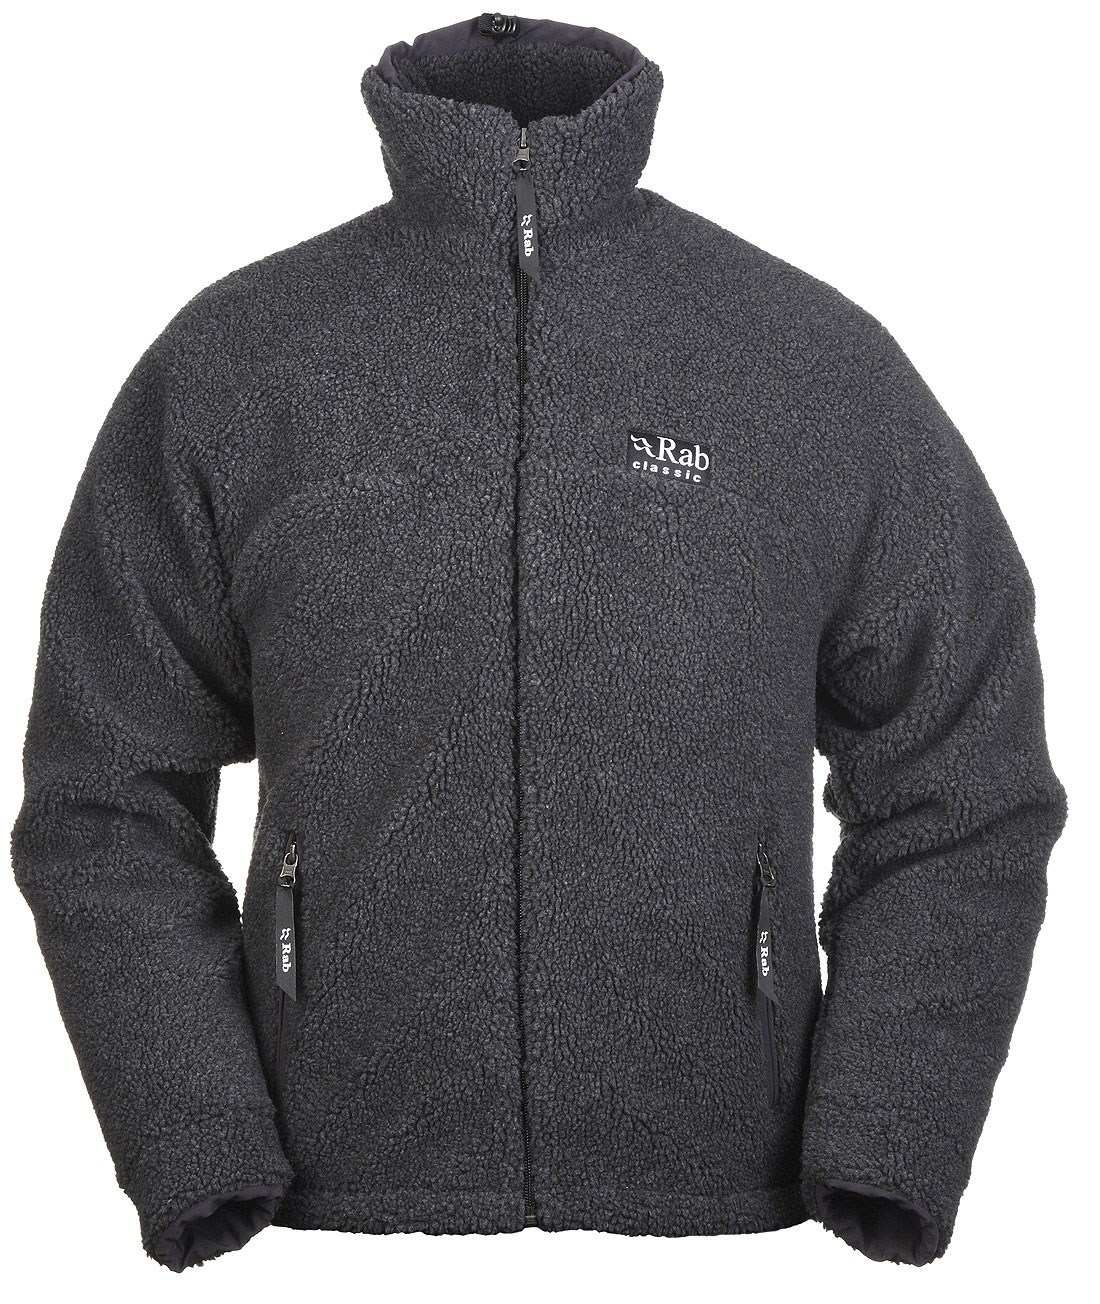 Rab Double Pile Men's Fleece Jacket | GO Outdoors